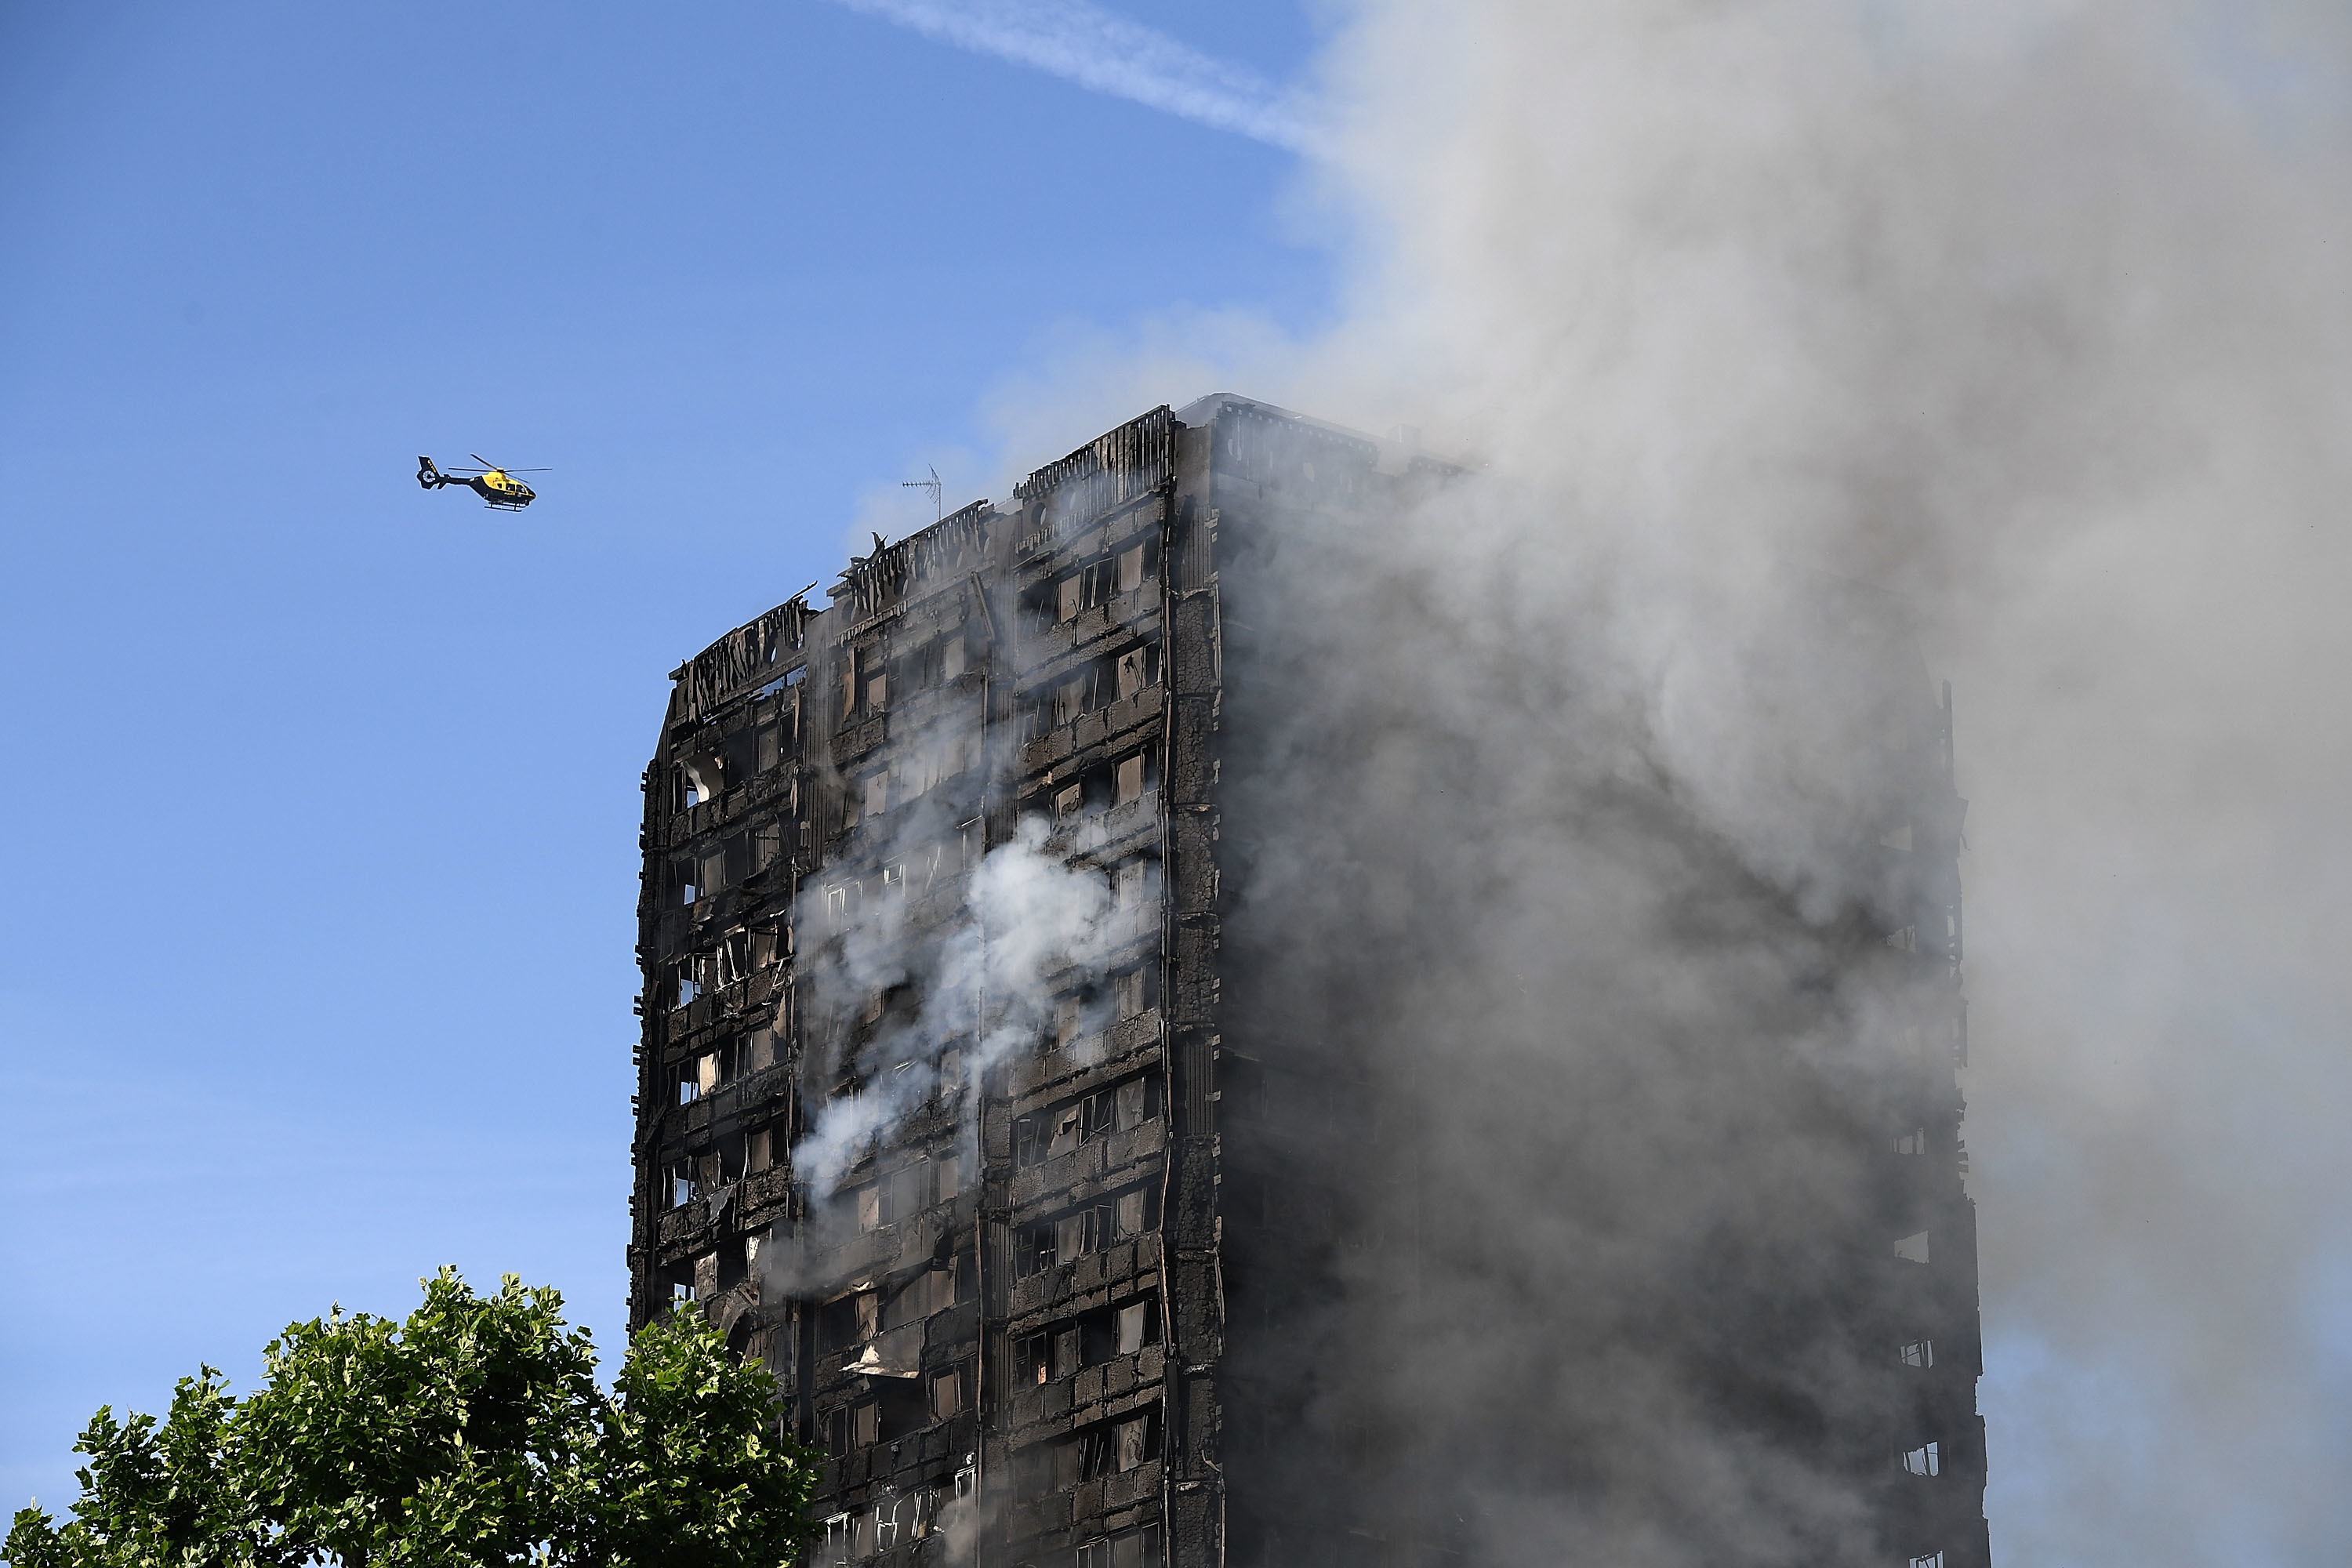 A heicopter circles as smoke rises from the building after a huge fire engulfed the 24 story Grenfell Tower